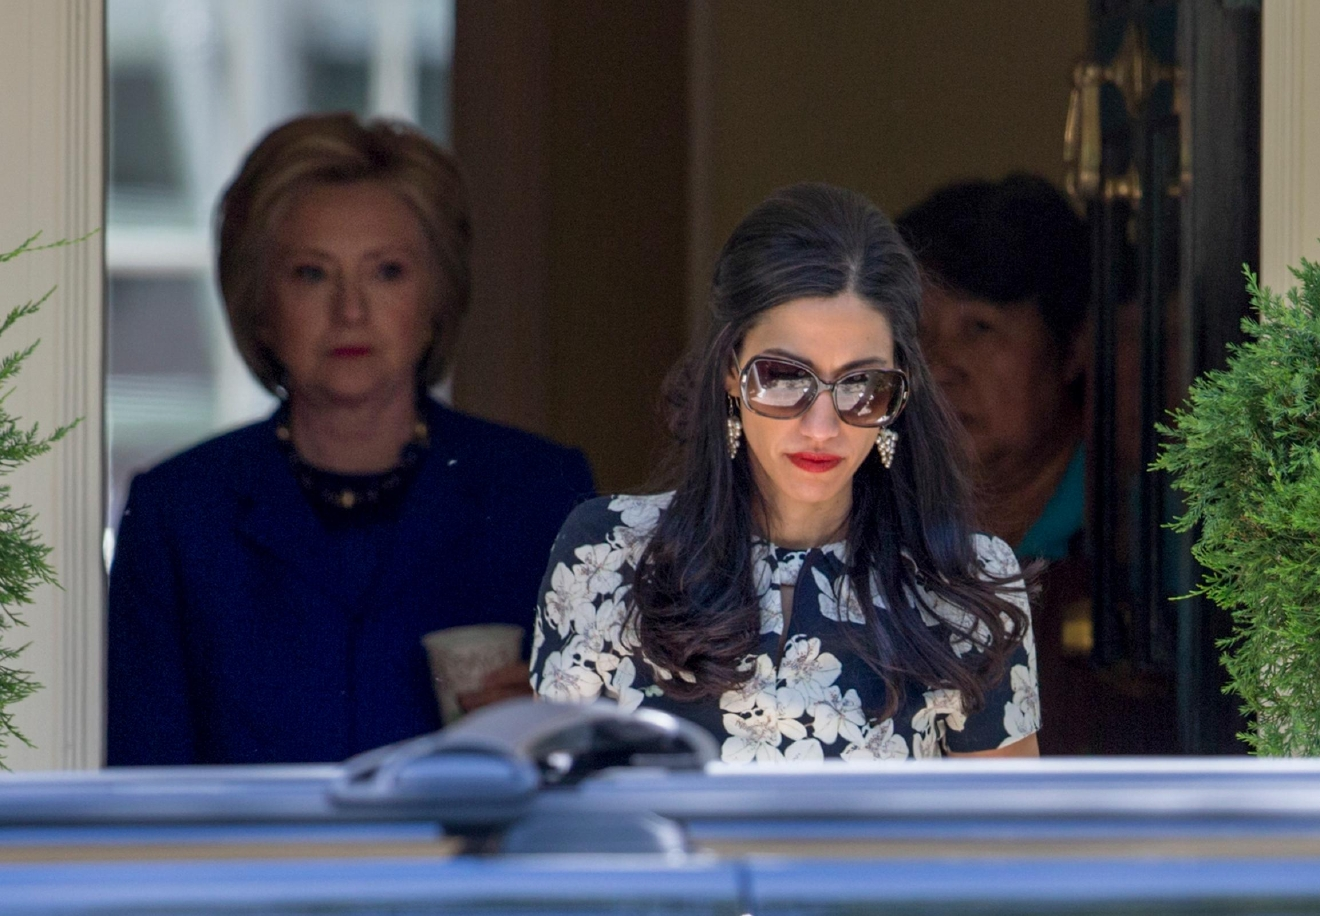 Top Clinton aide Huma Abedin walks ahead of Democratic presidential candidate Hillary Clinton following a private meeting with Sen. Elizabeth Warren, D-Mass., Friday, June 10, 2016, at Clinton's home in Washington. The FBI has obtained a warrant to begin reviewing newly discovered emails that may be relevant to the Hillary Clinton email server investigation, a law enforcement official told The Associated Press. FBI investigators want to review emails of longtime Clinton aide Huma Abedin that were found on a device seized during an unrelated sexting investigation of Anthony Weiner, a former New York congressman and Abedin's estranged husband. (AP Photo/J. Scott Applewhite)